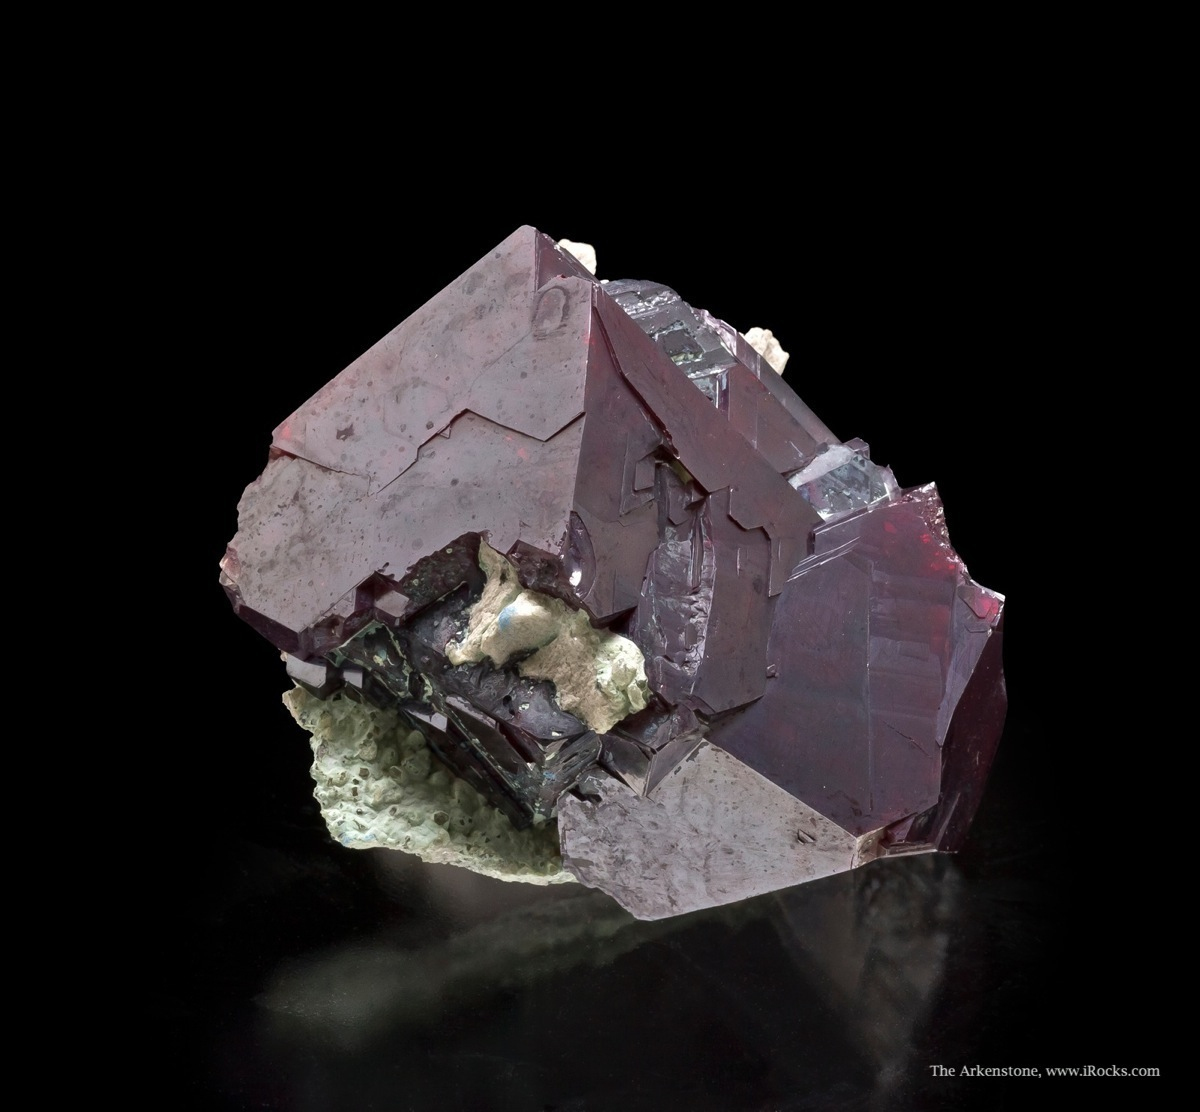 Classic material old Congo mining region blood red sharp cuprites